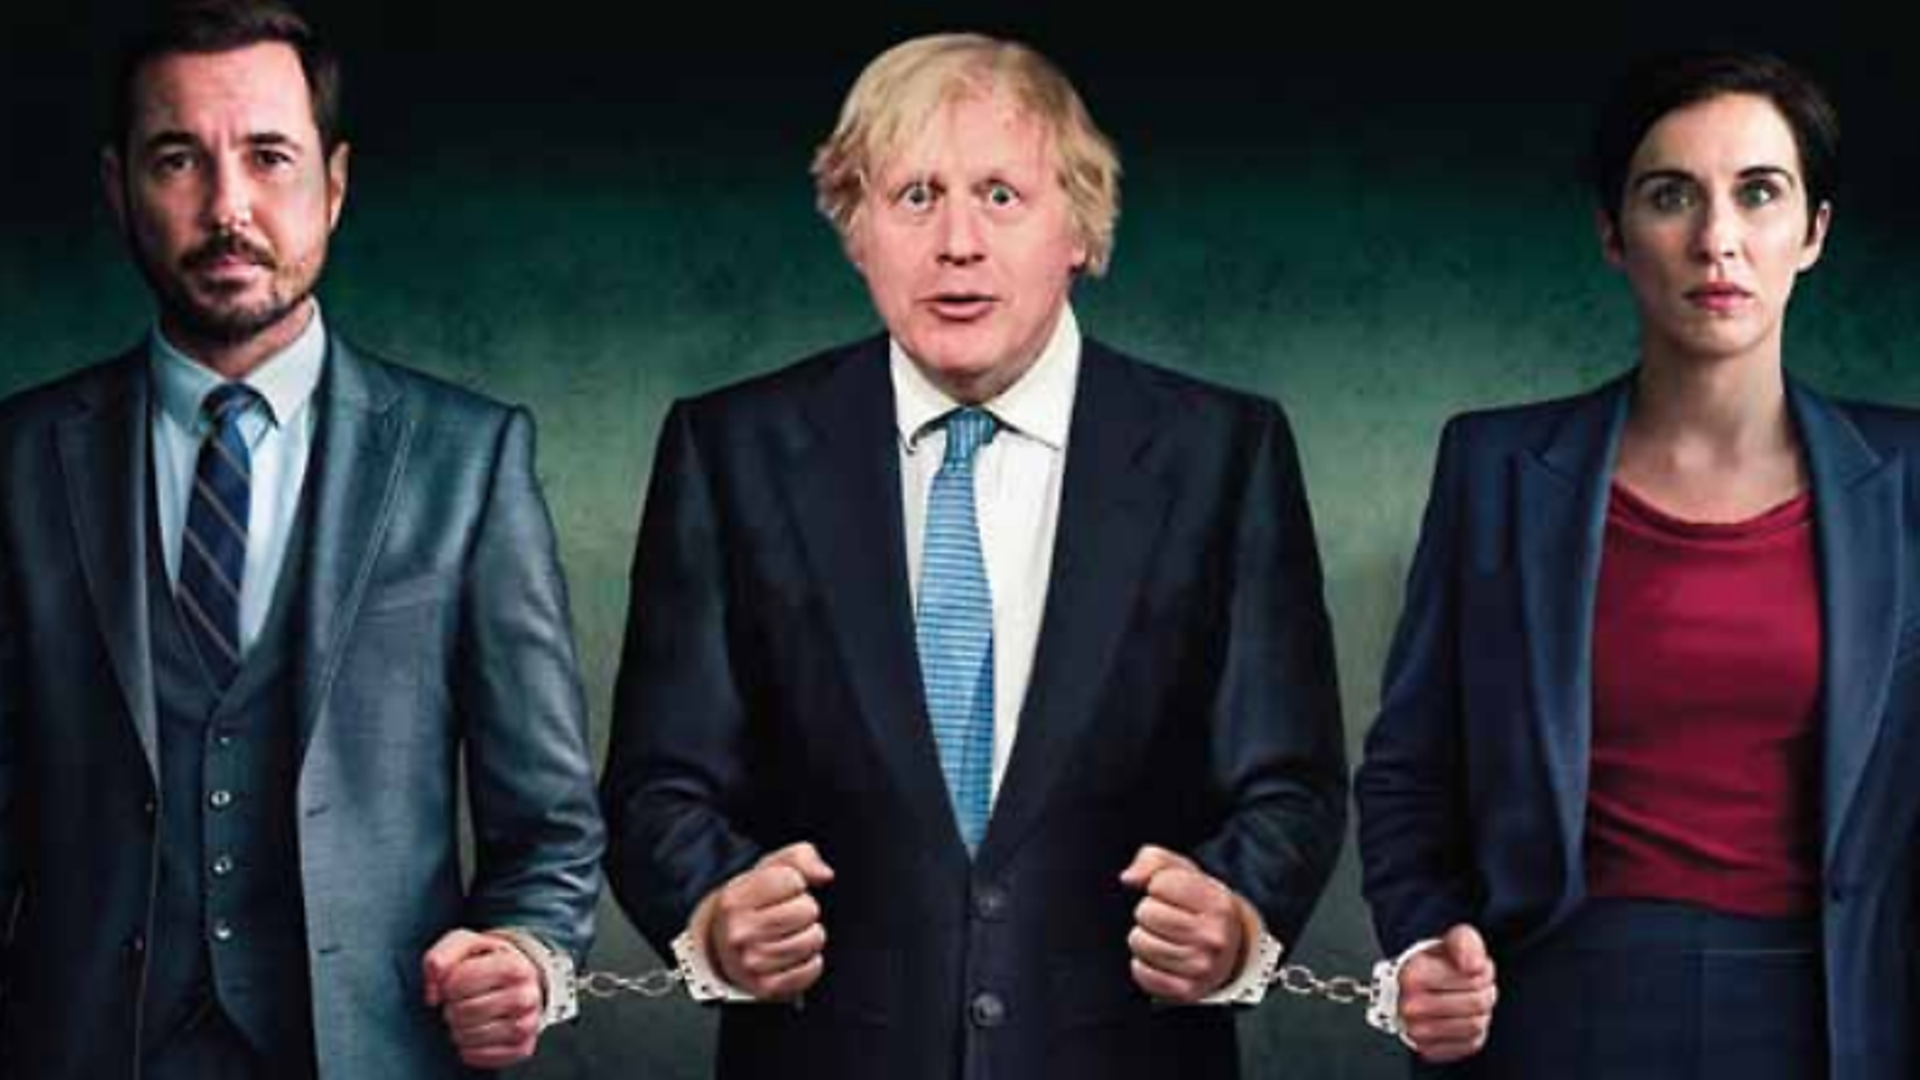 Boris Johnson meets AC-12 in a Line of Duty mock-up for The New European - Credit: The New European